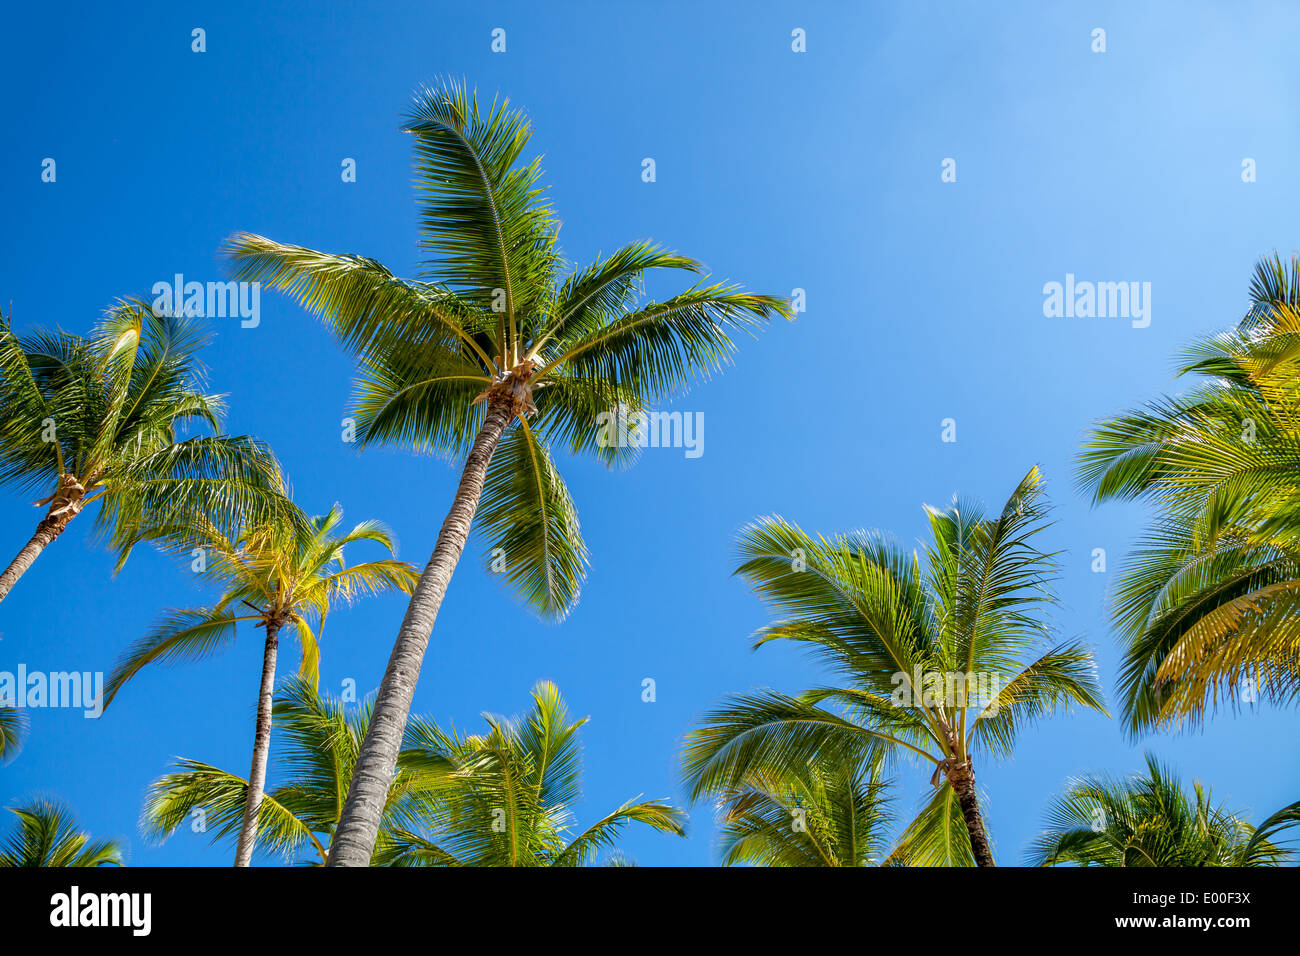 Palm trees against blue sky at sunset - Stock Image